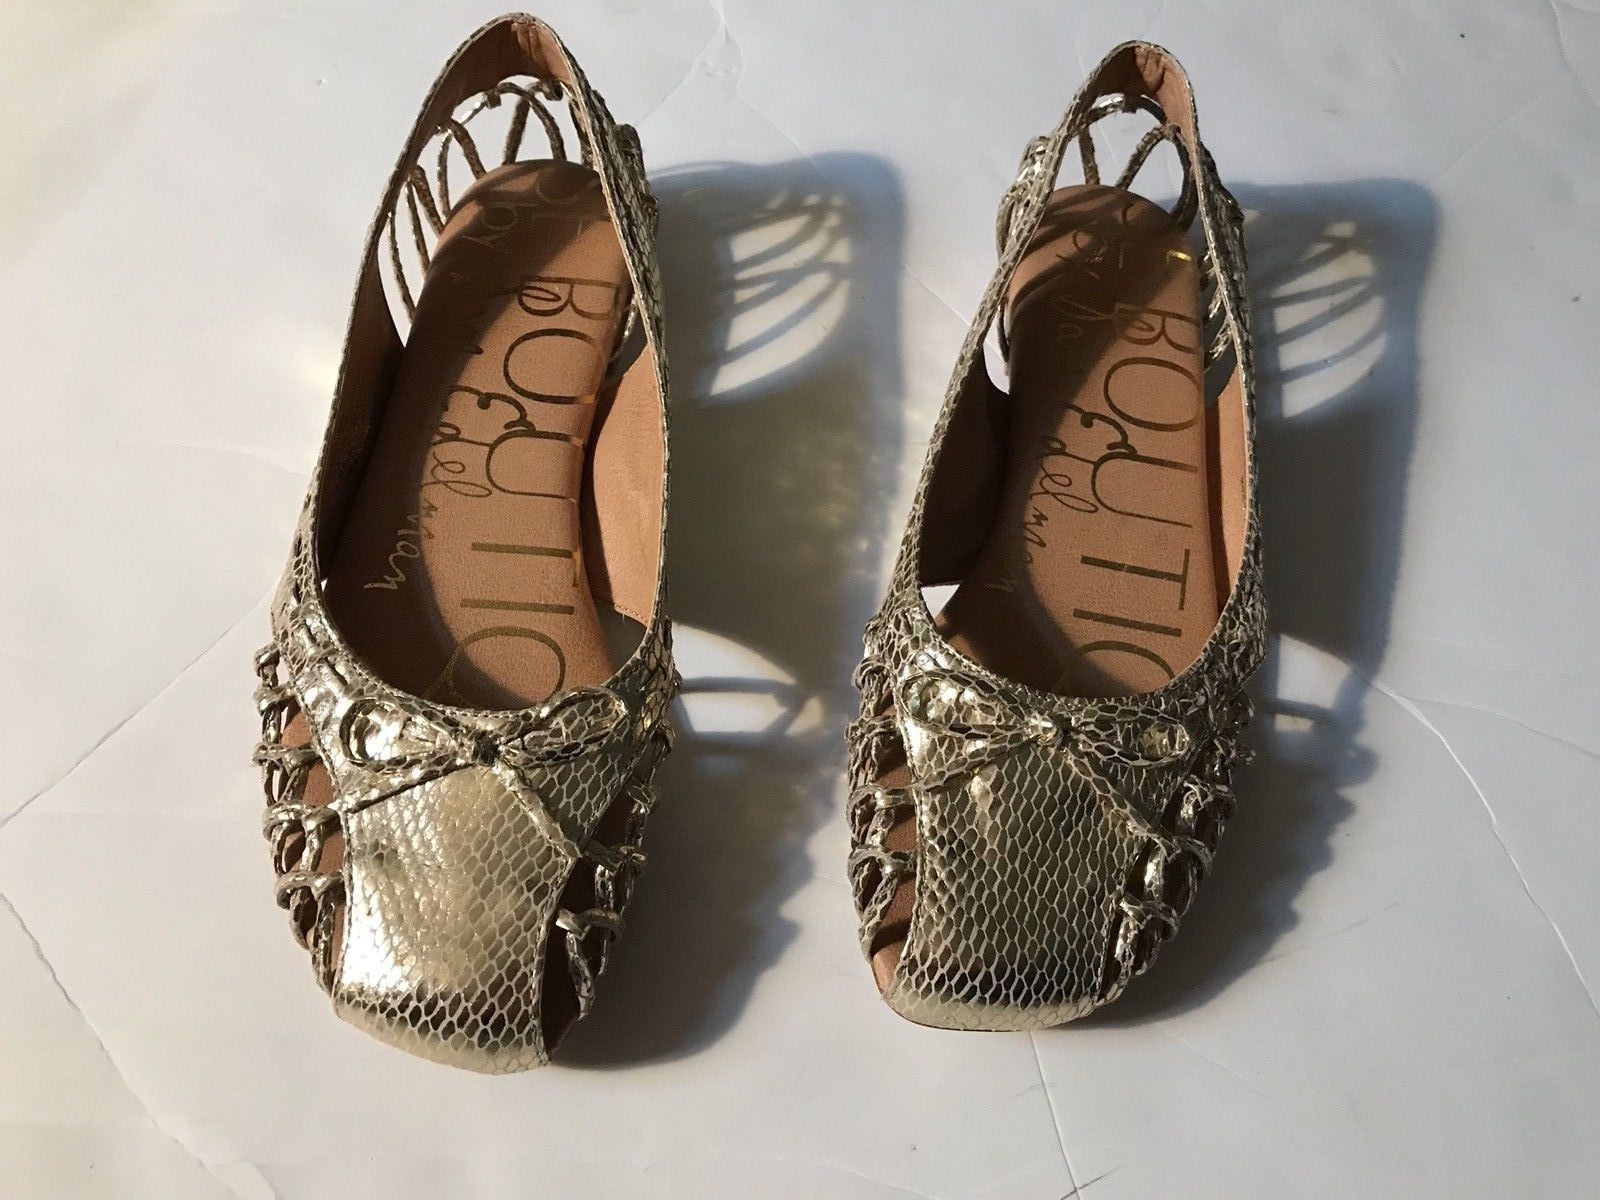 3a13c9035eed02 24.99 ❤ EUC Pre-owned Womens SE BOUTIQUE BY SAM EDELMAN Gold Flats Shoes